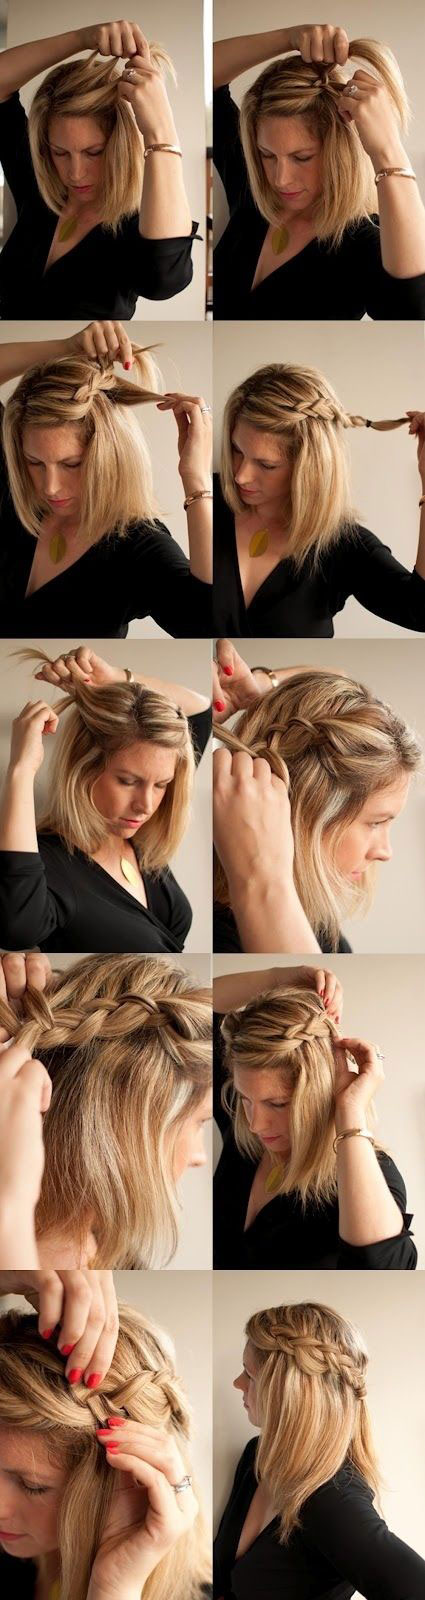 15 Cute and Easy Hairstyle Tutorials For Medium-Length Hair ...